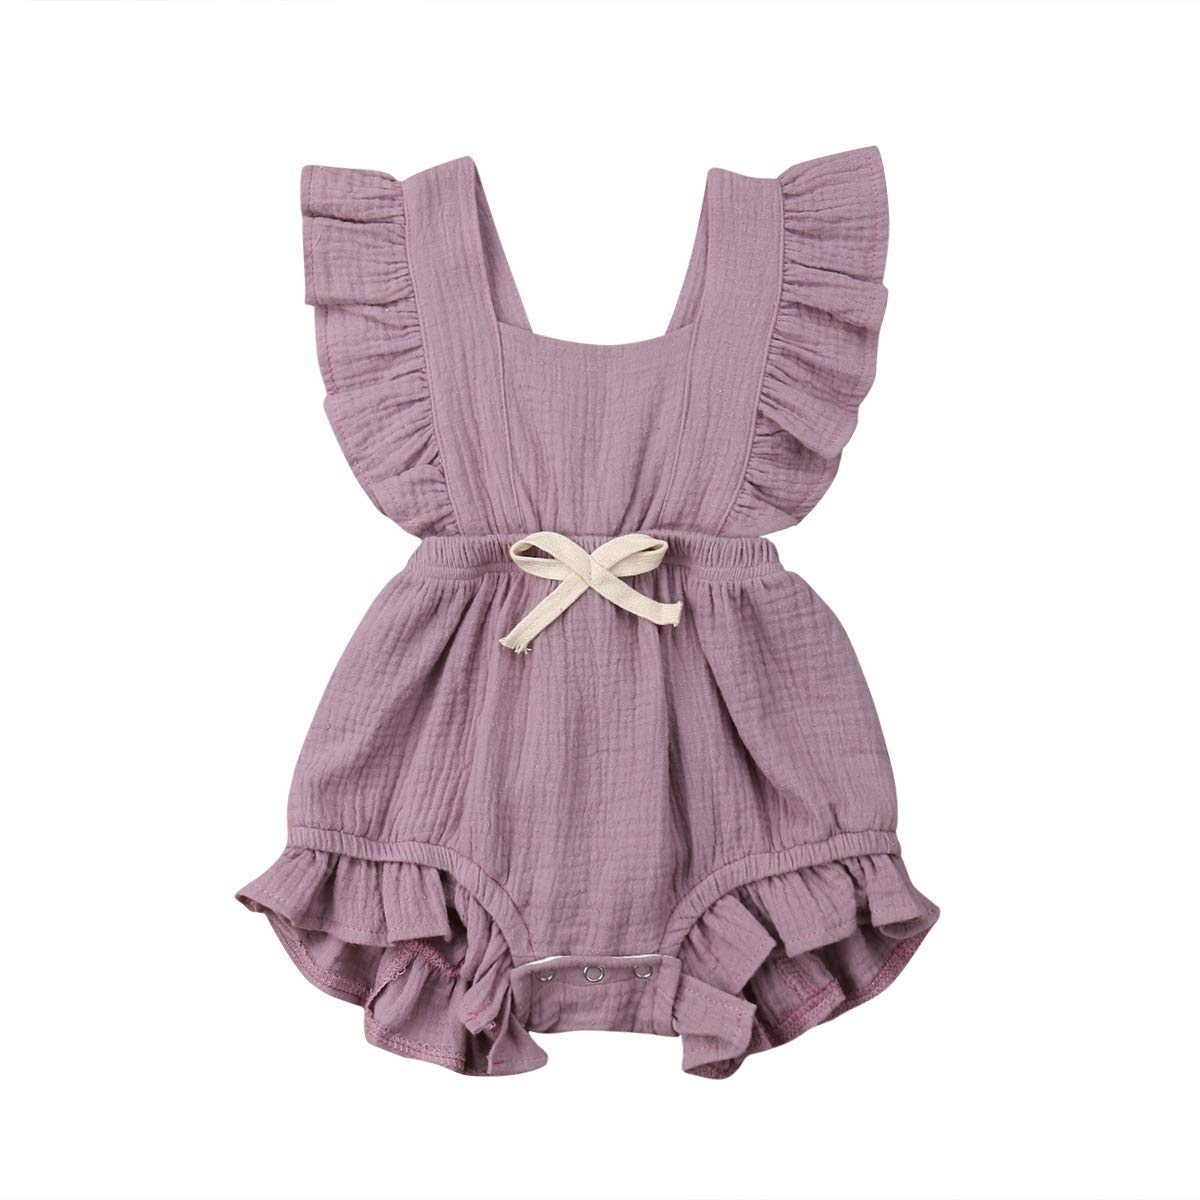 Infant Baby Girl Bodysuit Sleeveless Ruffles Romper Sunsuit Outfit Princess Clothes (Purple, 12-18 Months)